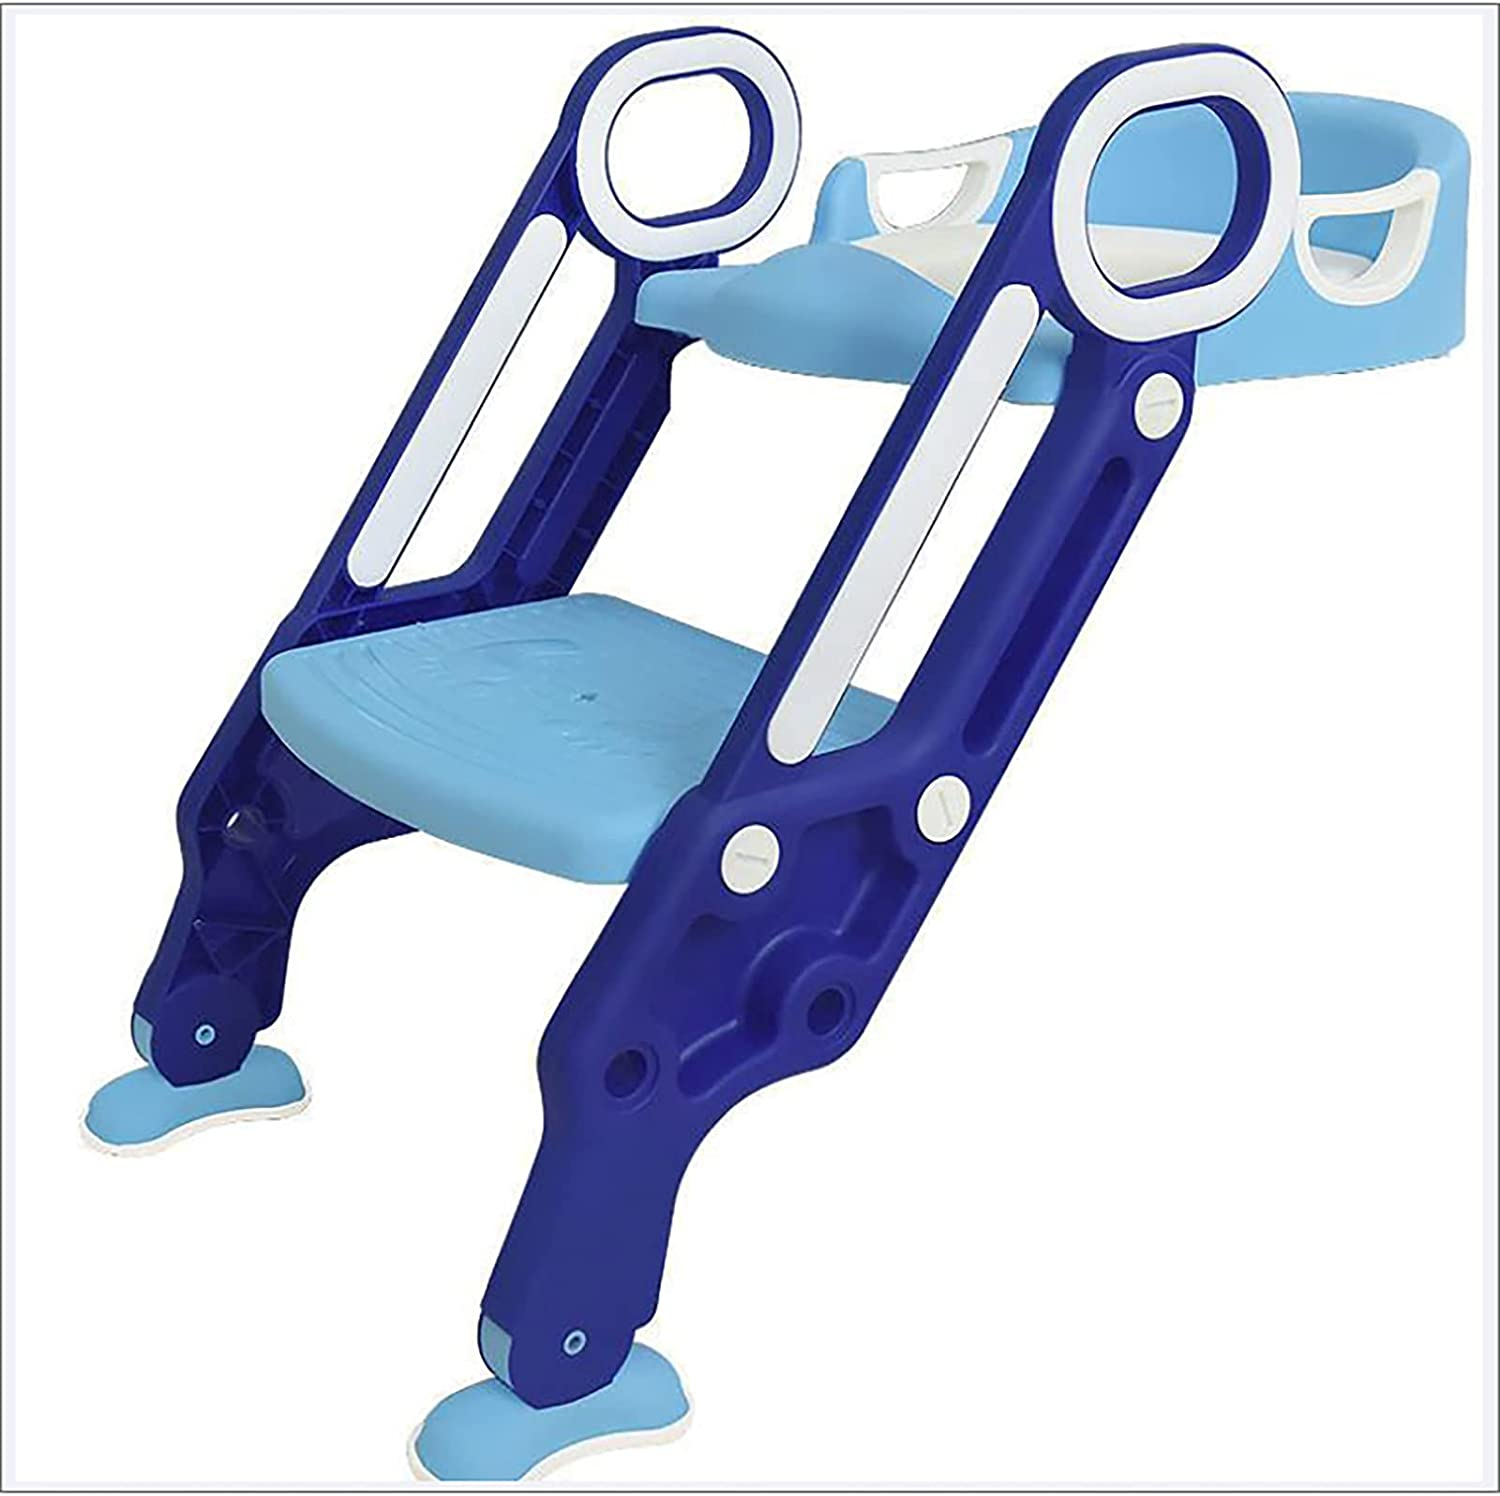 FDYZS Potty Training Max 53% OFF Seat Foldable To Max 69% OFF for Square Suitable